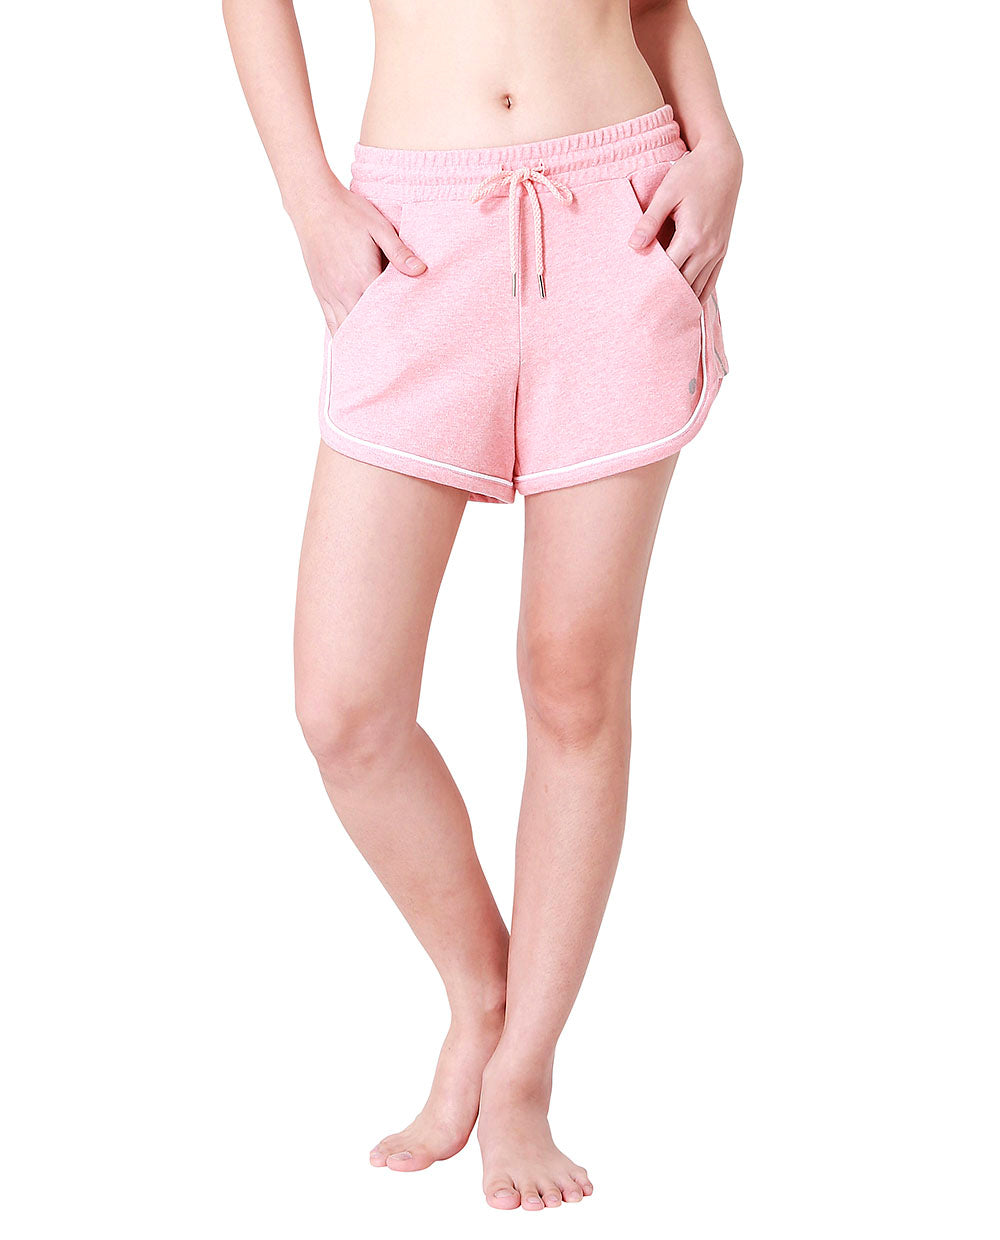 (WBxTAEW) SWEAT SHORTS - PINK